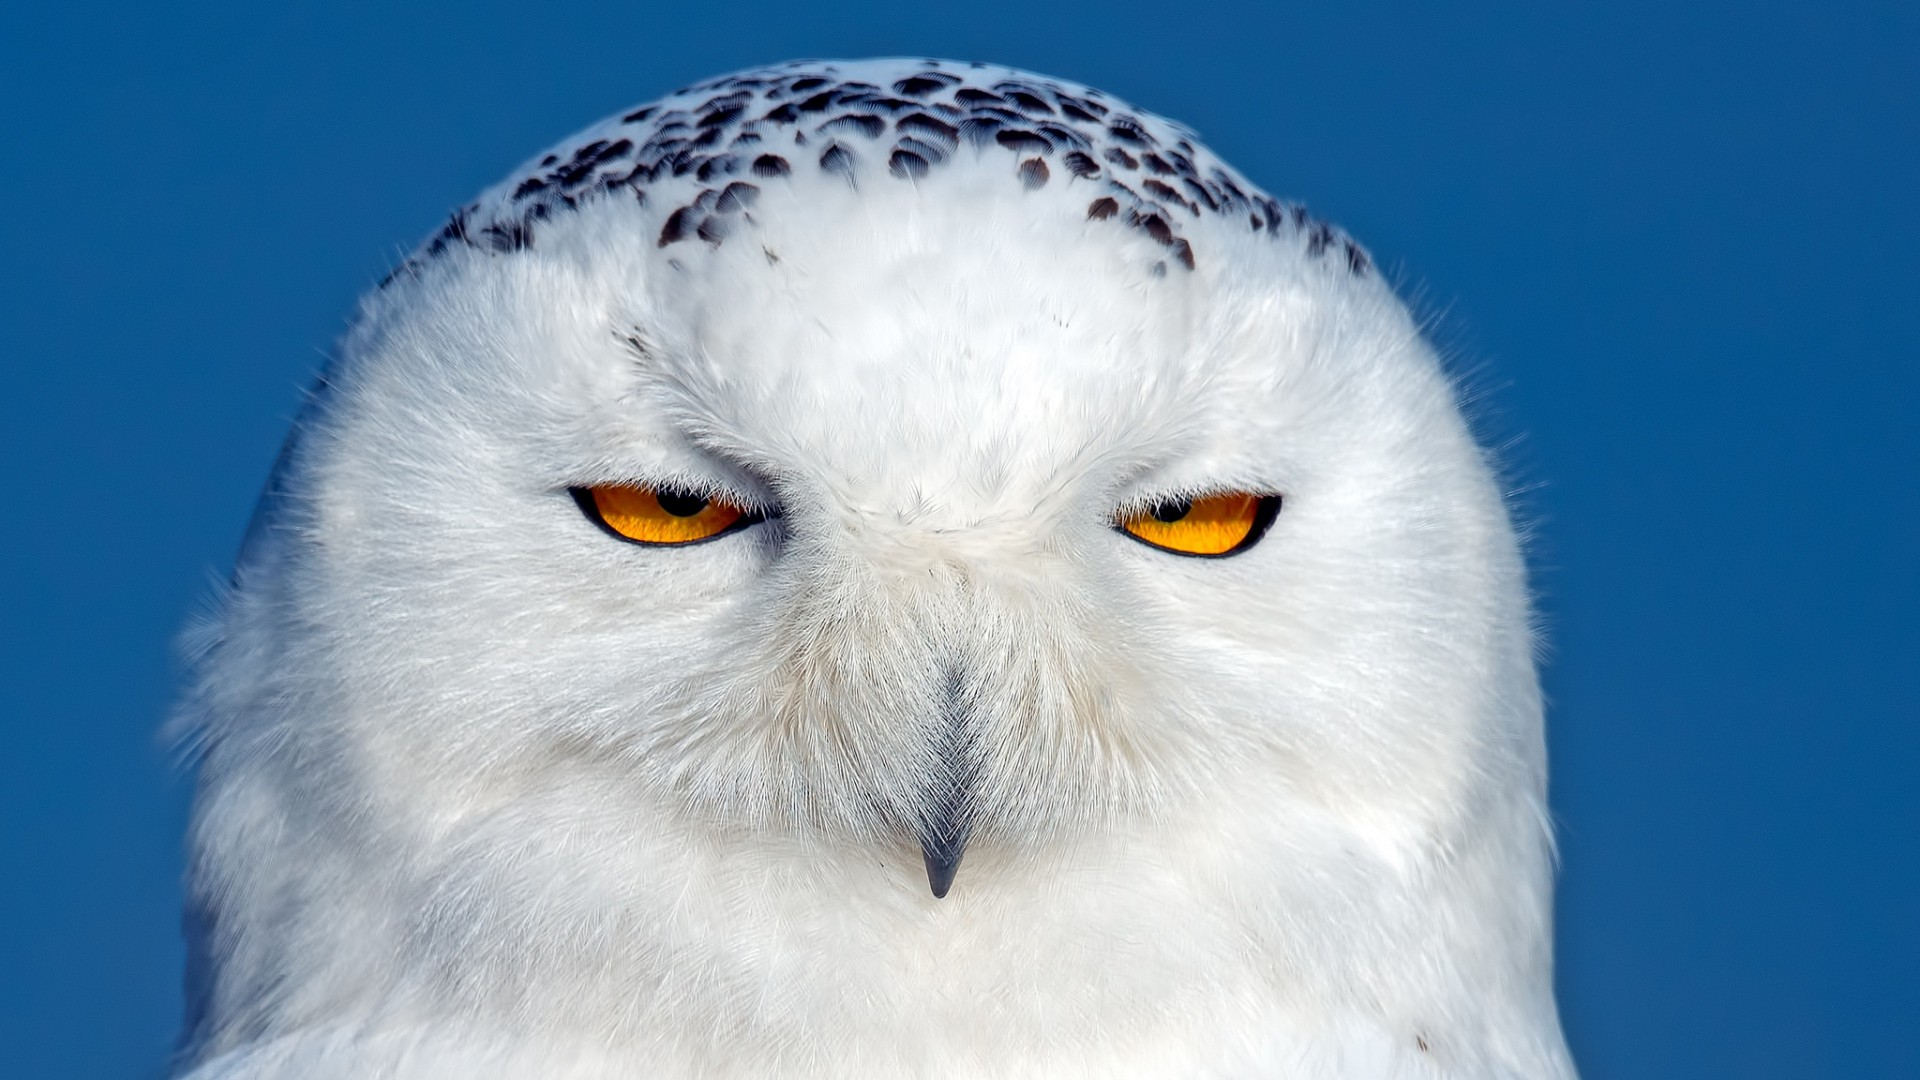 Snowy Owl Wallpapers Free